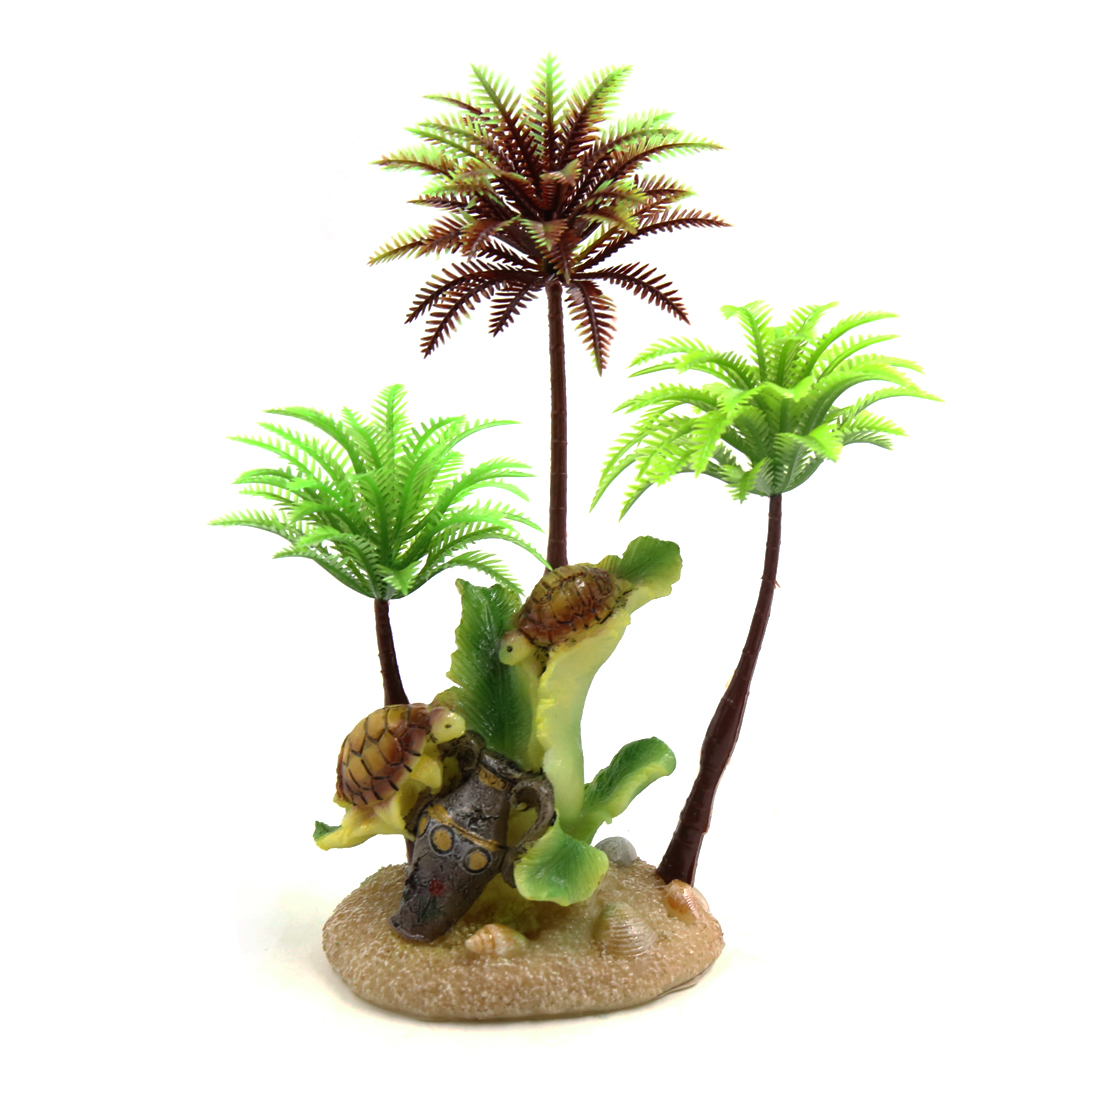 Reptiles Amphibians Plastic Decorative Tree Terrarium Plant Ornament